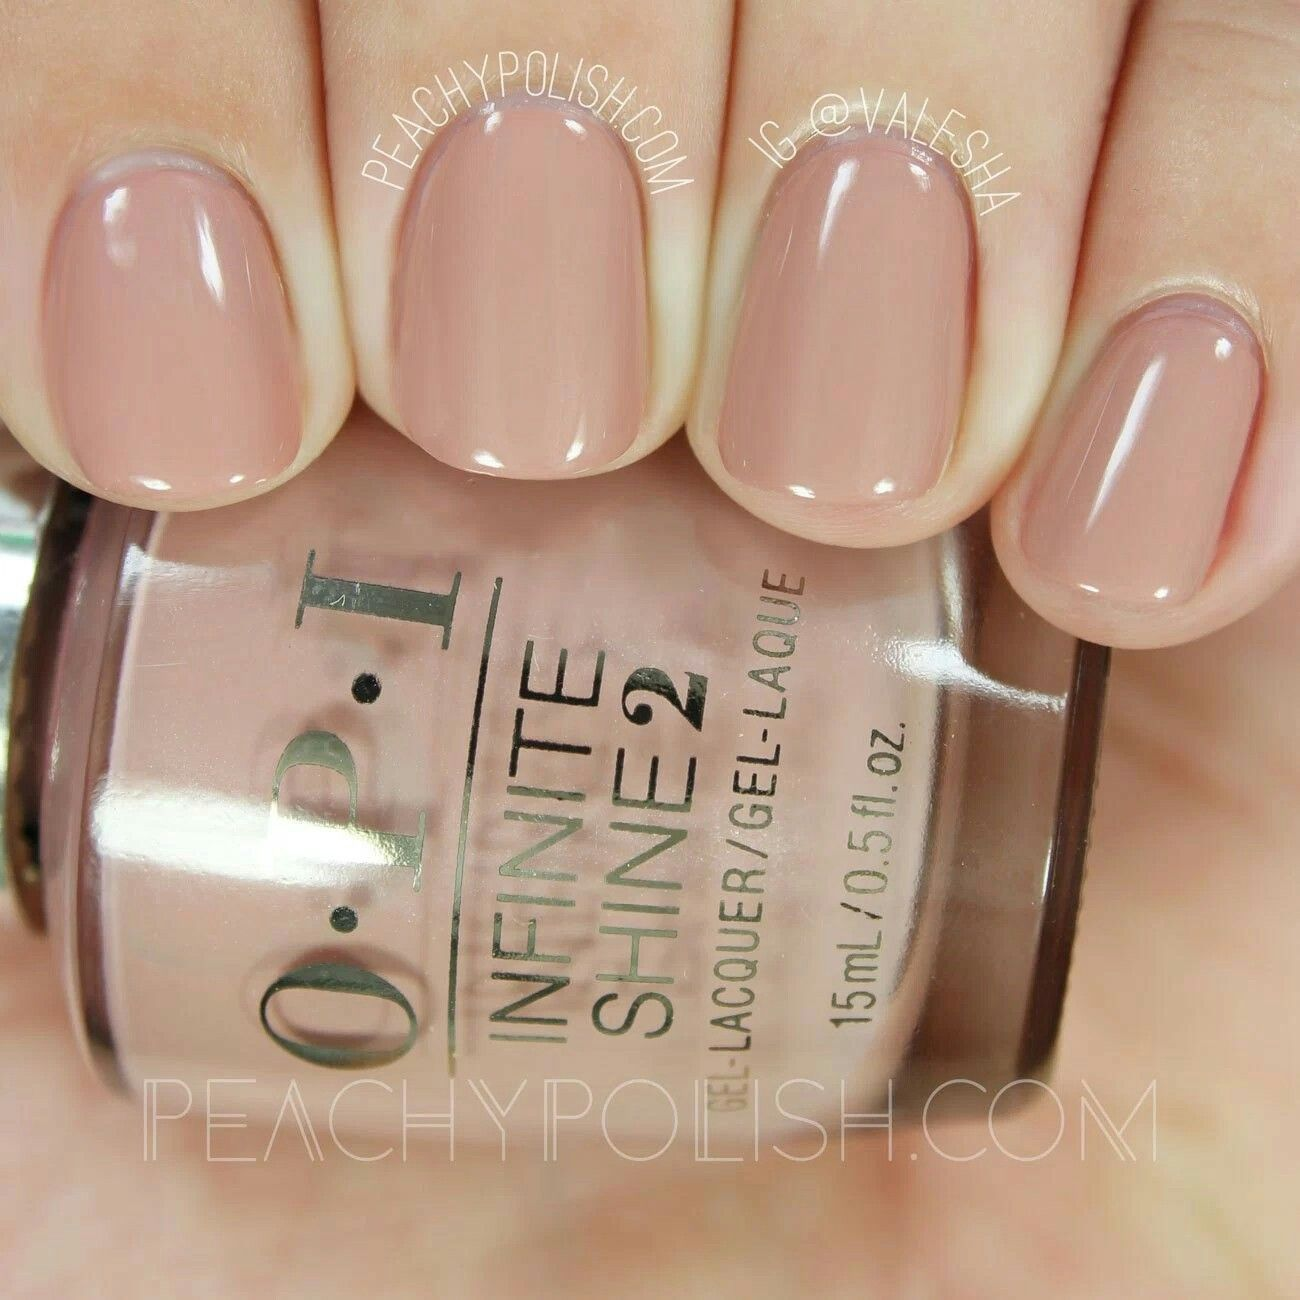 Pin by Allegra252 on nailed it   Pinterest   Nail care, OPI and Make up